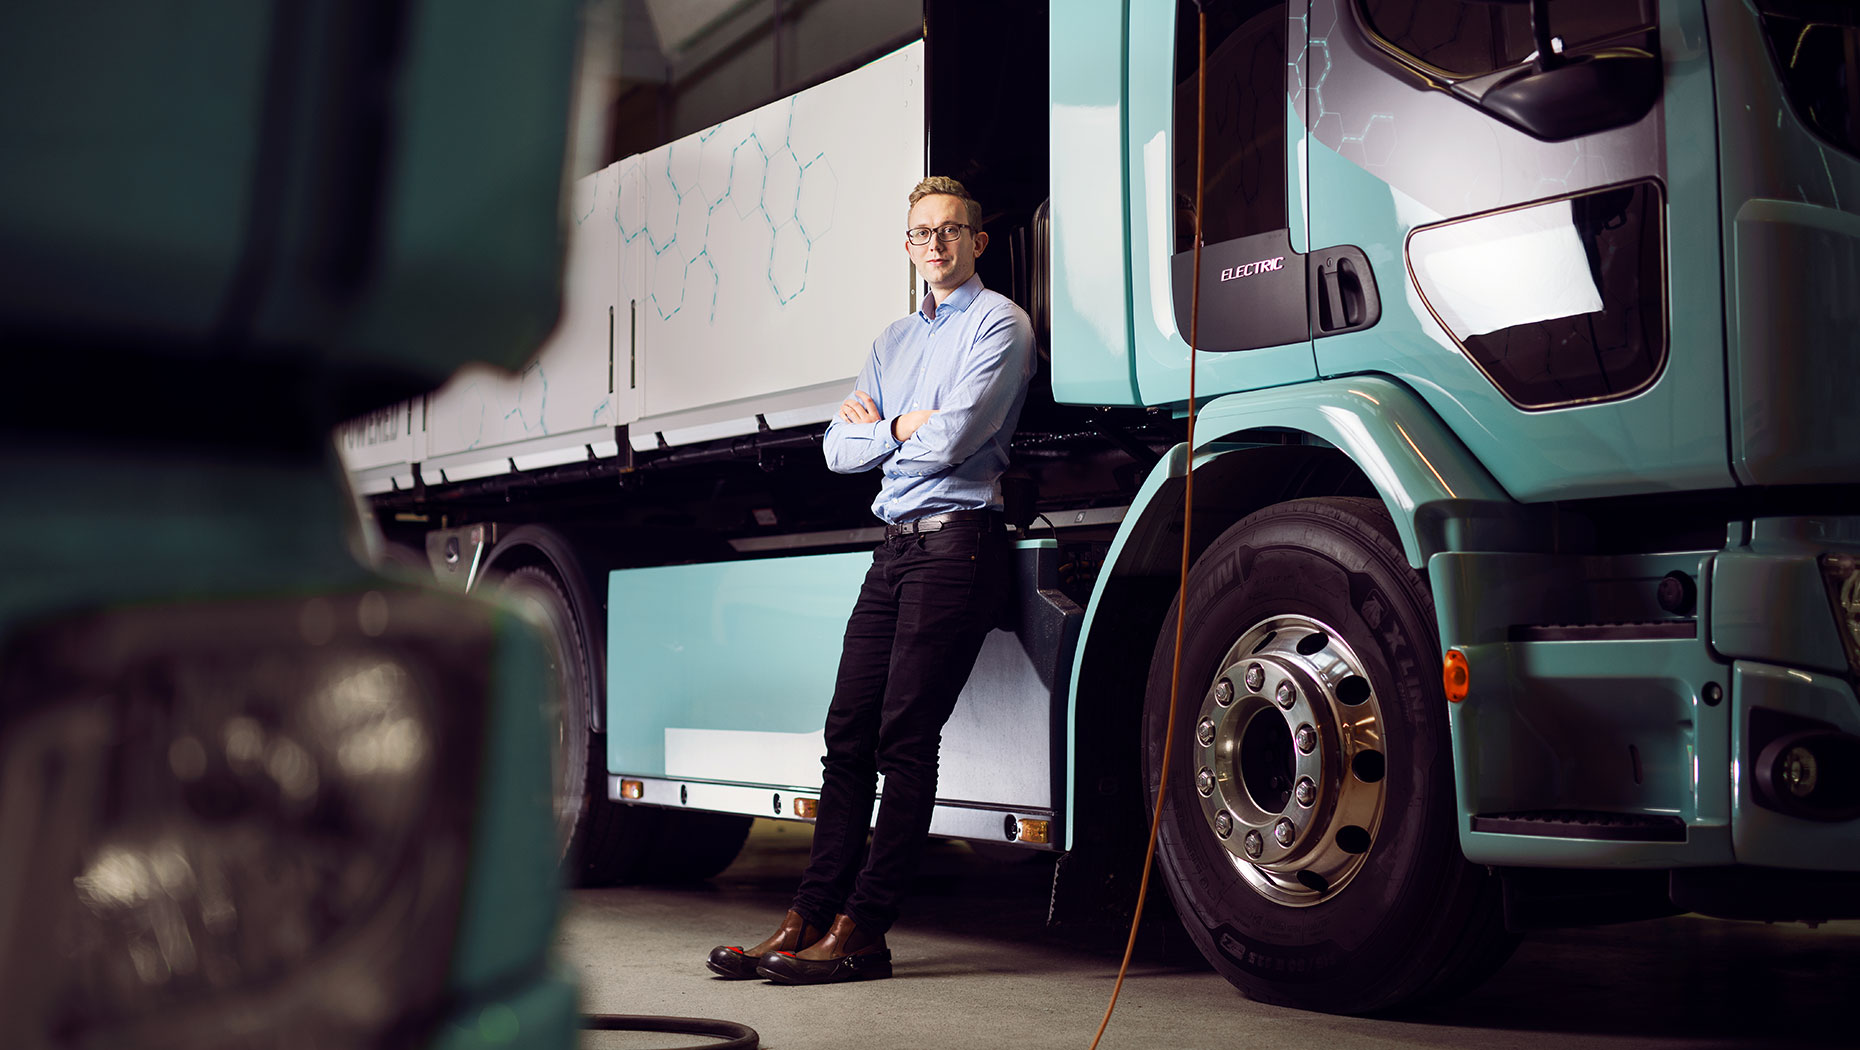 Rikard Vinge, Data Scientist at the Volvo Group, alongside one of Volvo's electric trucks